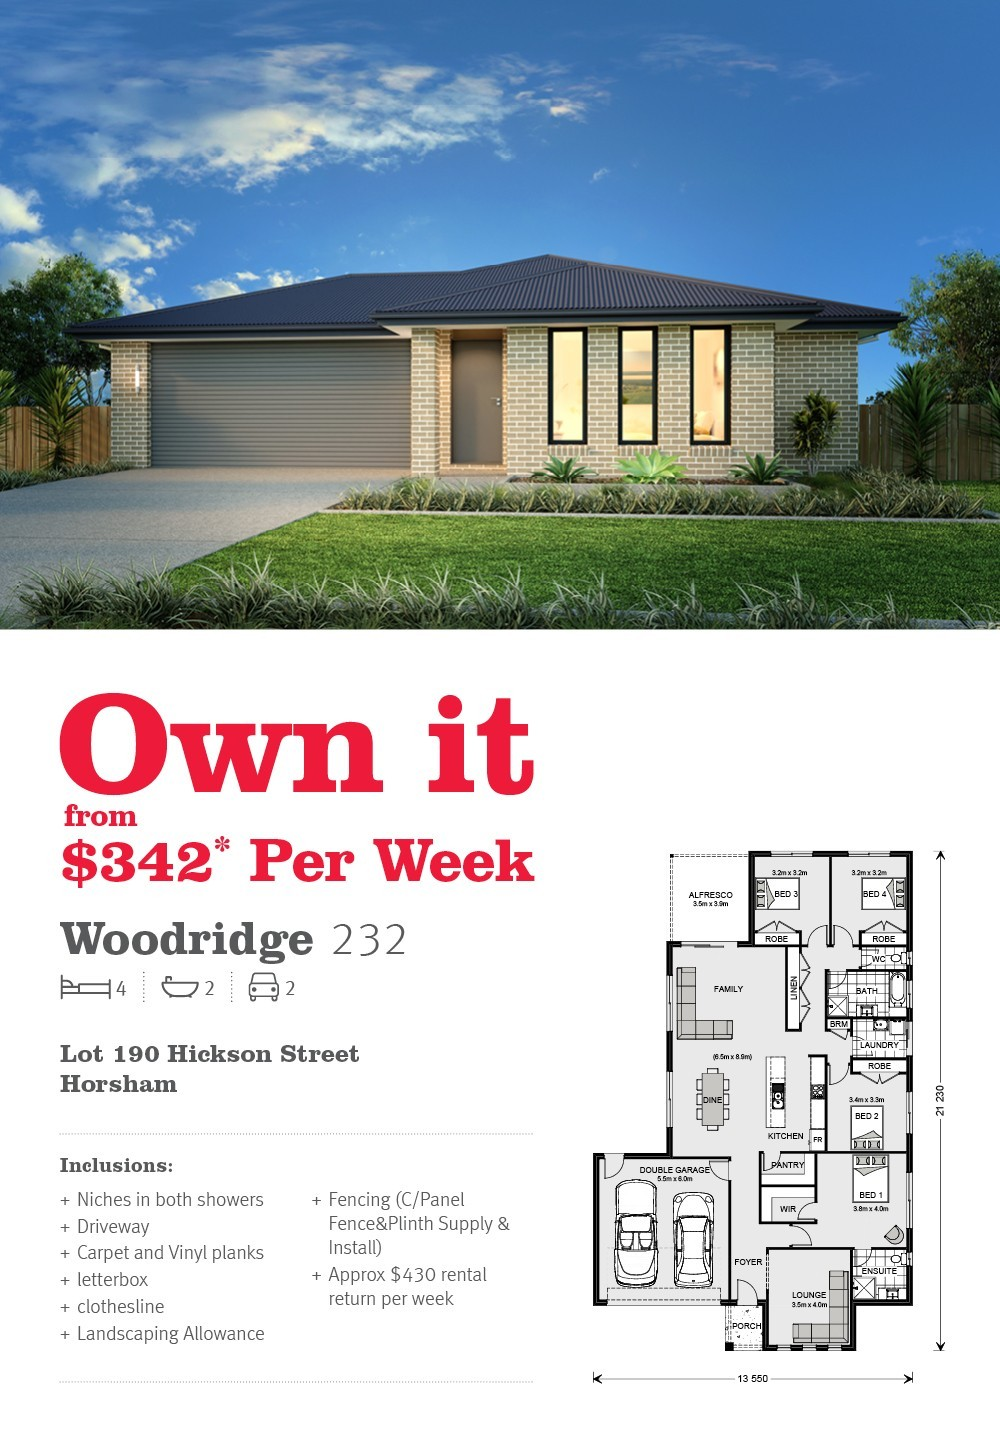 House and land in Horsham from just $342 per week*